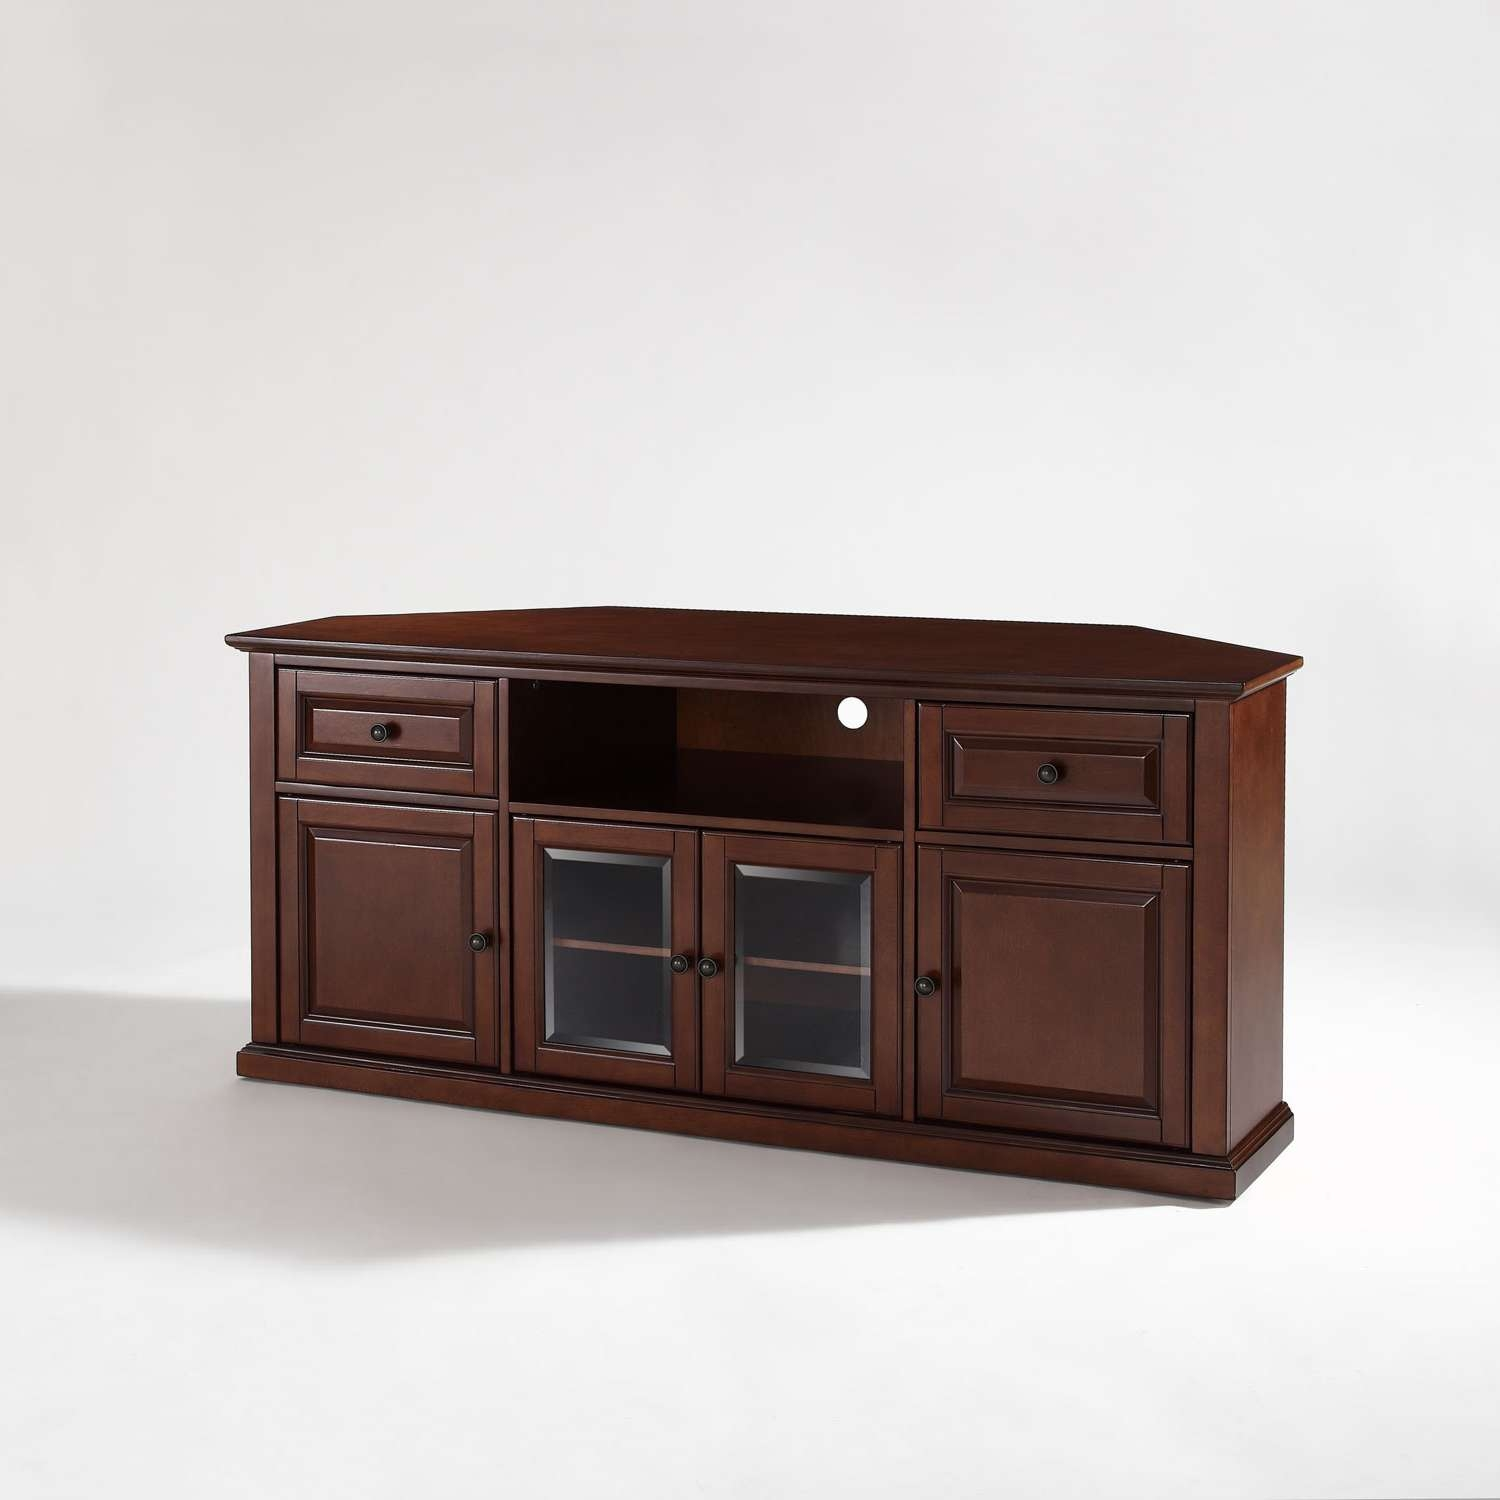 Tv Stand : Corner Tv Standnch Unforgettablemagenspirations Stands Pertaining To Corner Tv Stands 40 Inch (View 18 of 20)